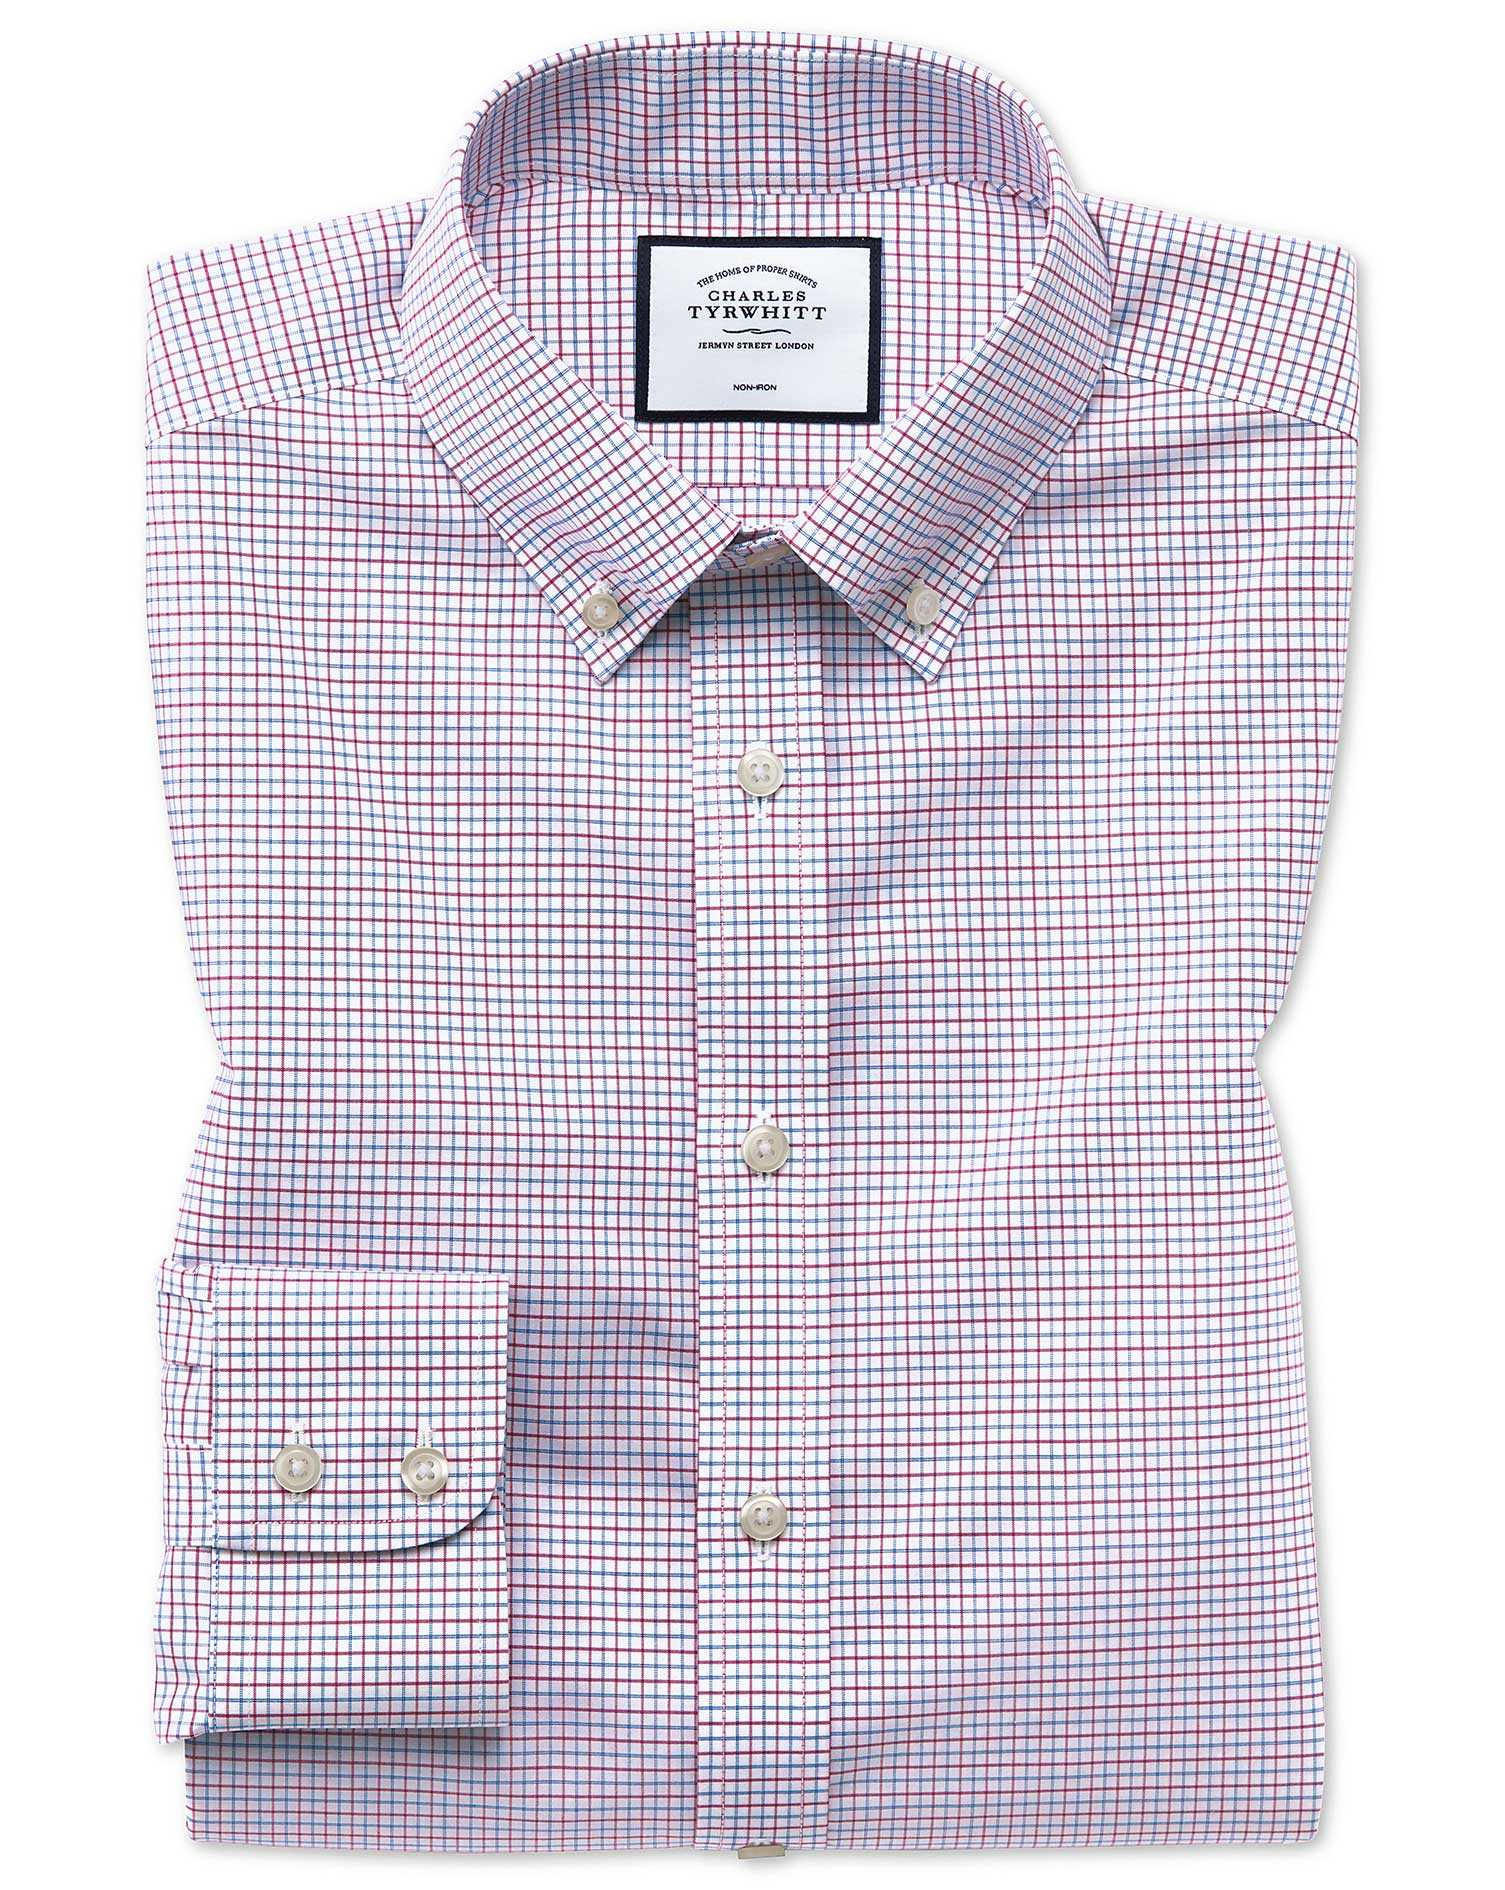 Slim Fit Non-Iron Button-Down Red and Blue Check Cotton Formal Shirt Single Cuff Size 16.5/35 by Cha